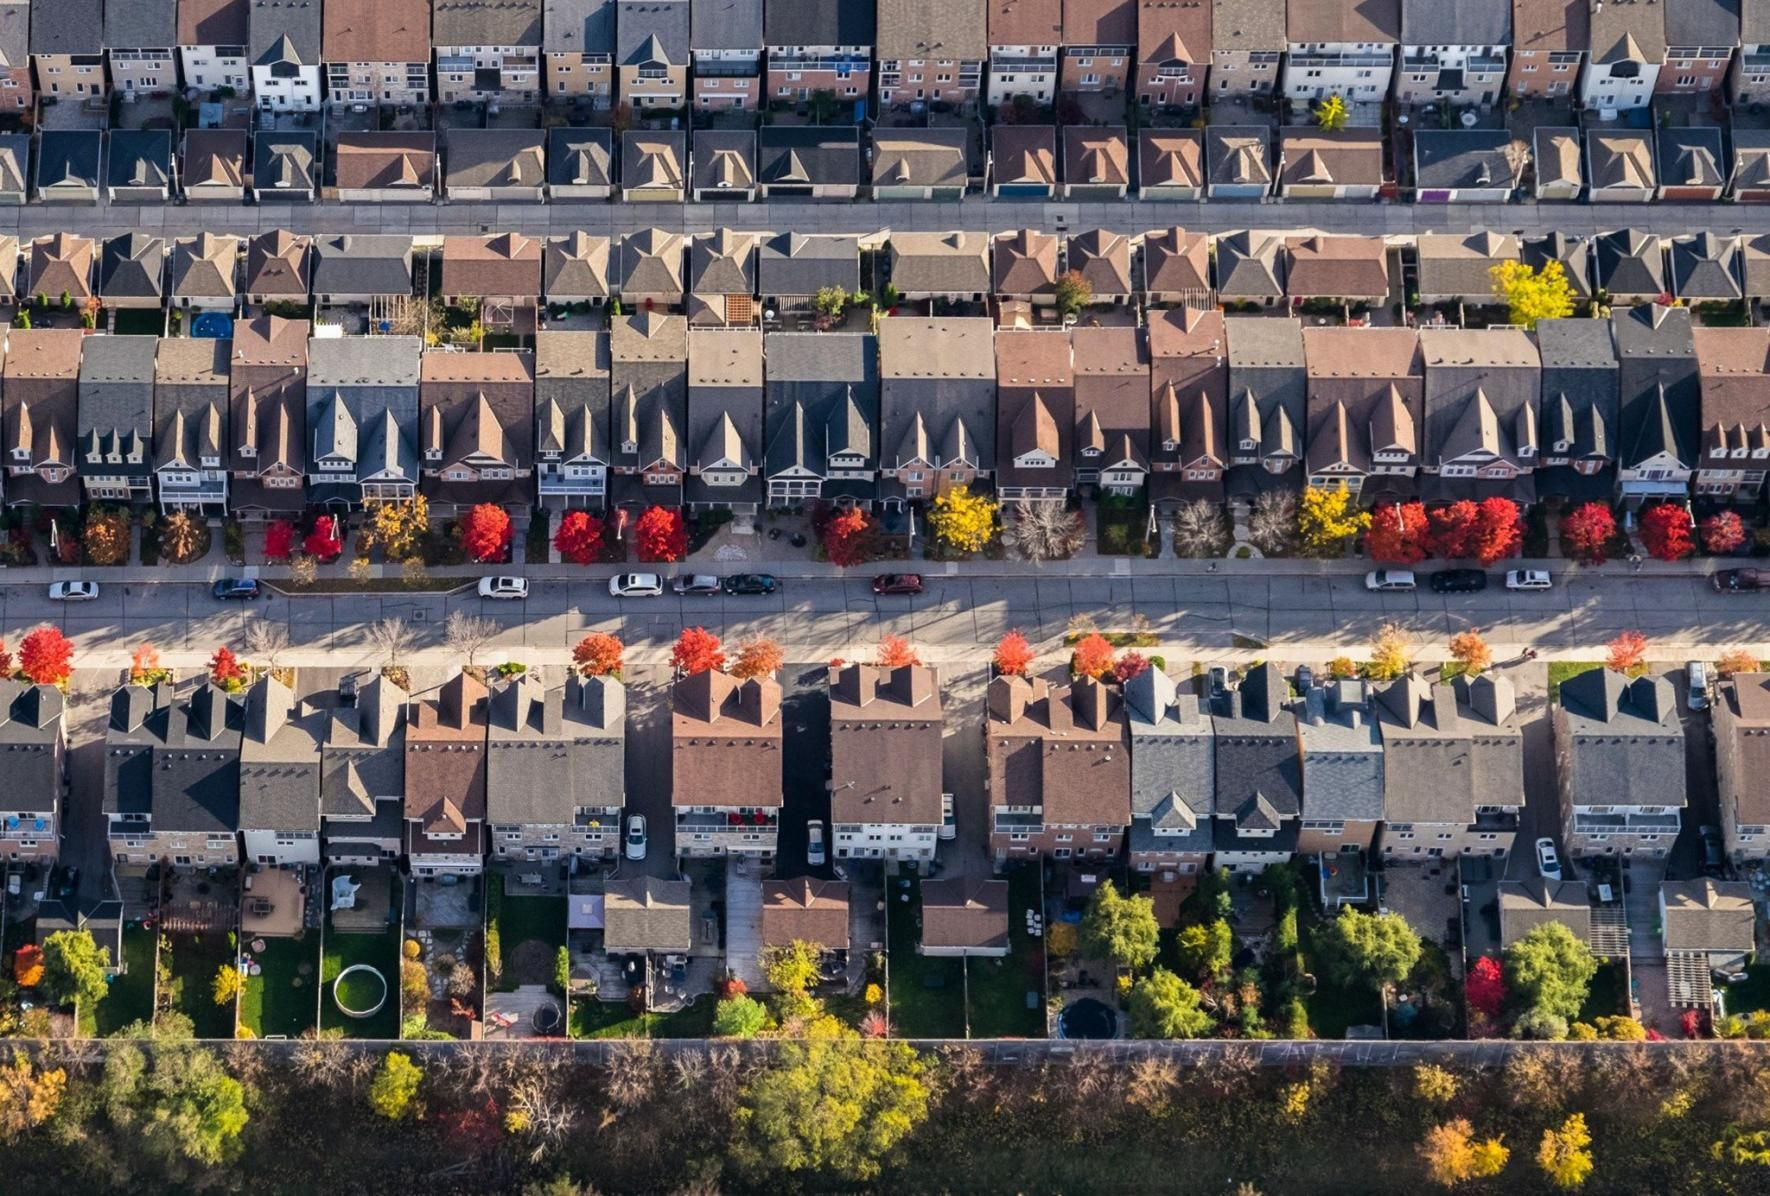 Rows of houses seen from above